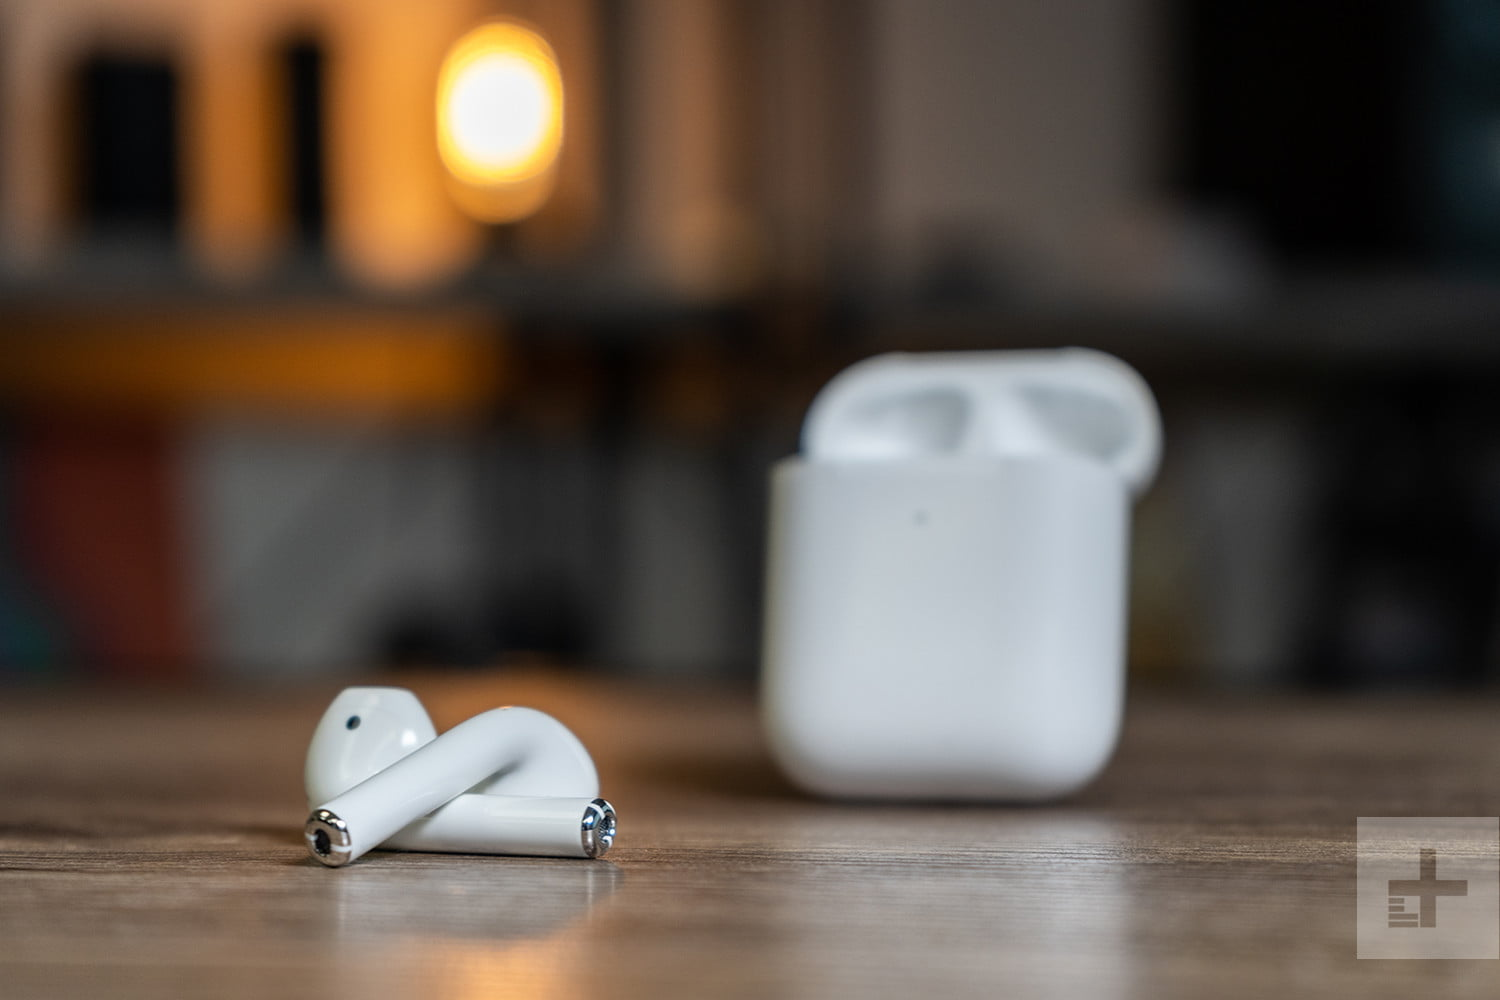 Quick! Apple AirPods are the cheapest they have ever been